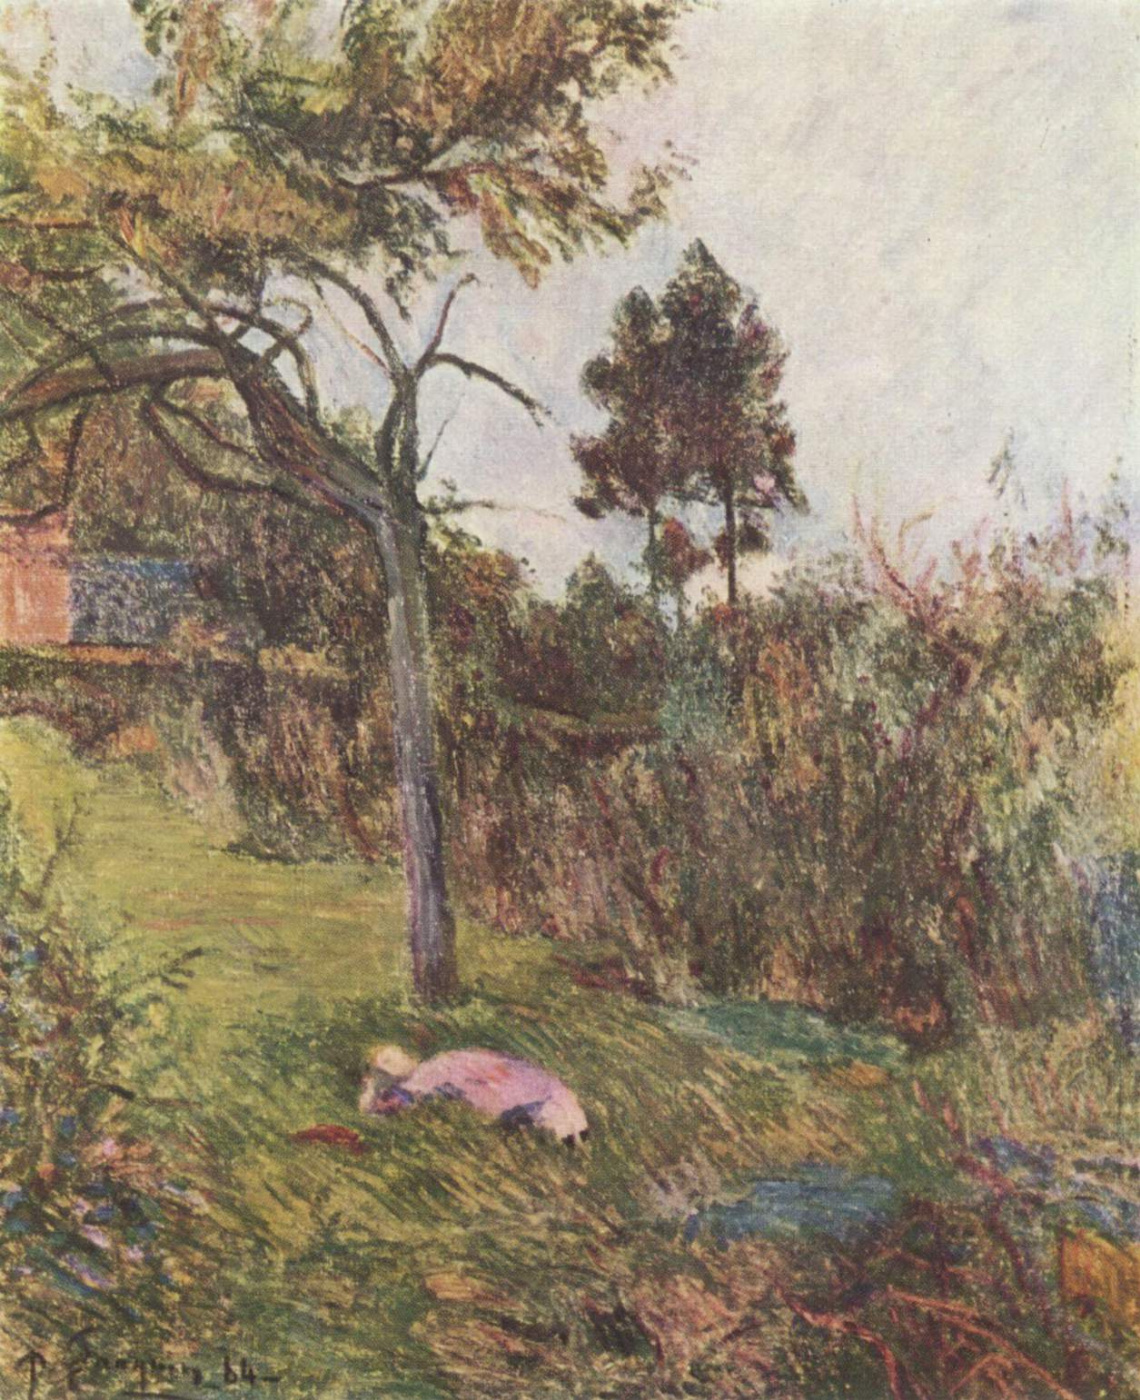 Paul Gauguin. Landscape with reclining woman